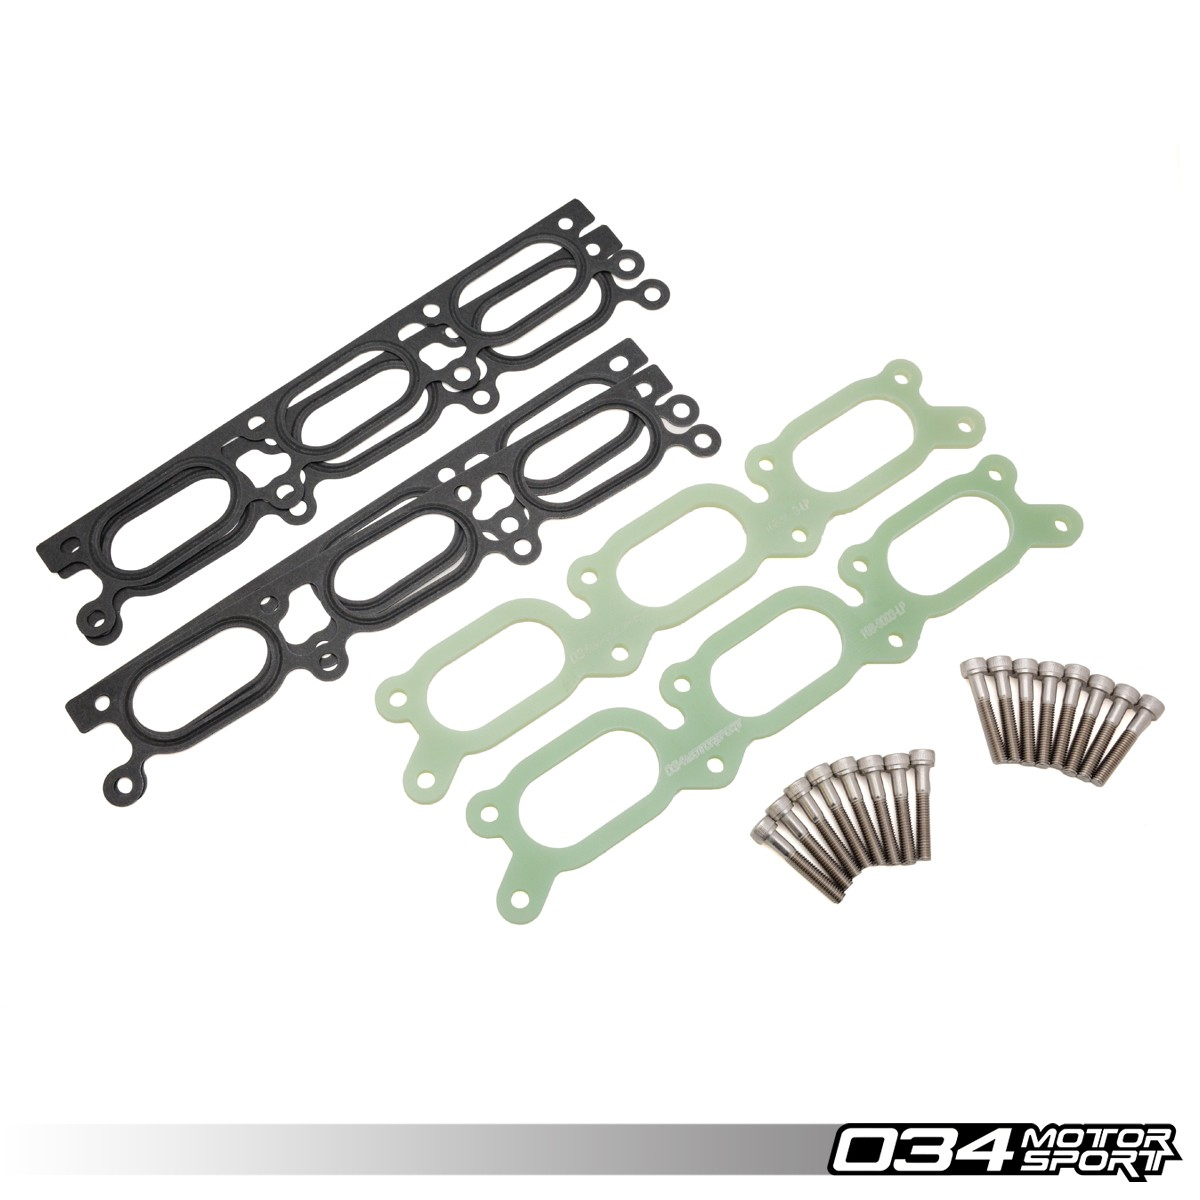 Intake Manifold Spacer, Phenolic, Large Port Audi B5 A4/S4/RS4 C5 A6/Allroad 2.7T & 2.8L 30V V6 | 034-108-9003-LP